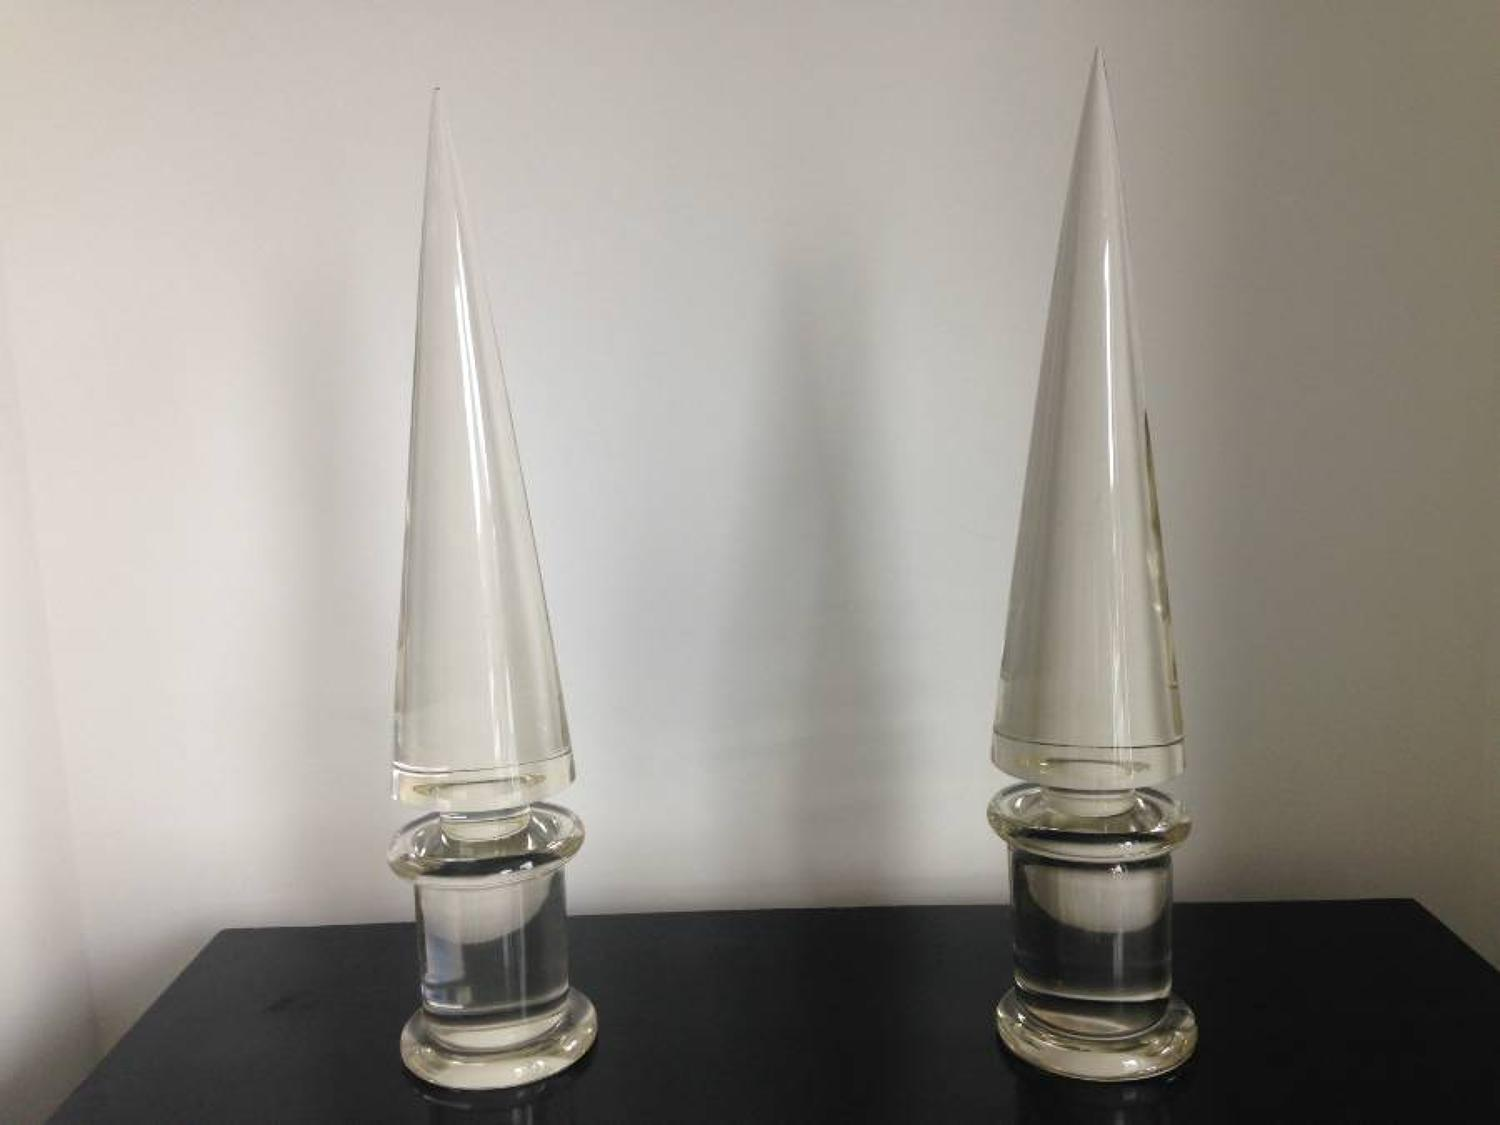 A pair of Murano glass obelisks by Seguso